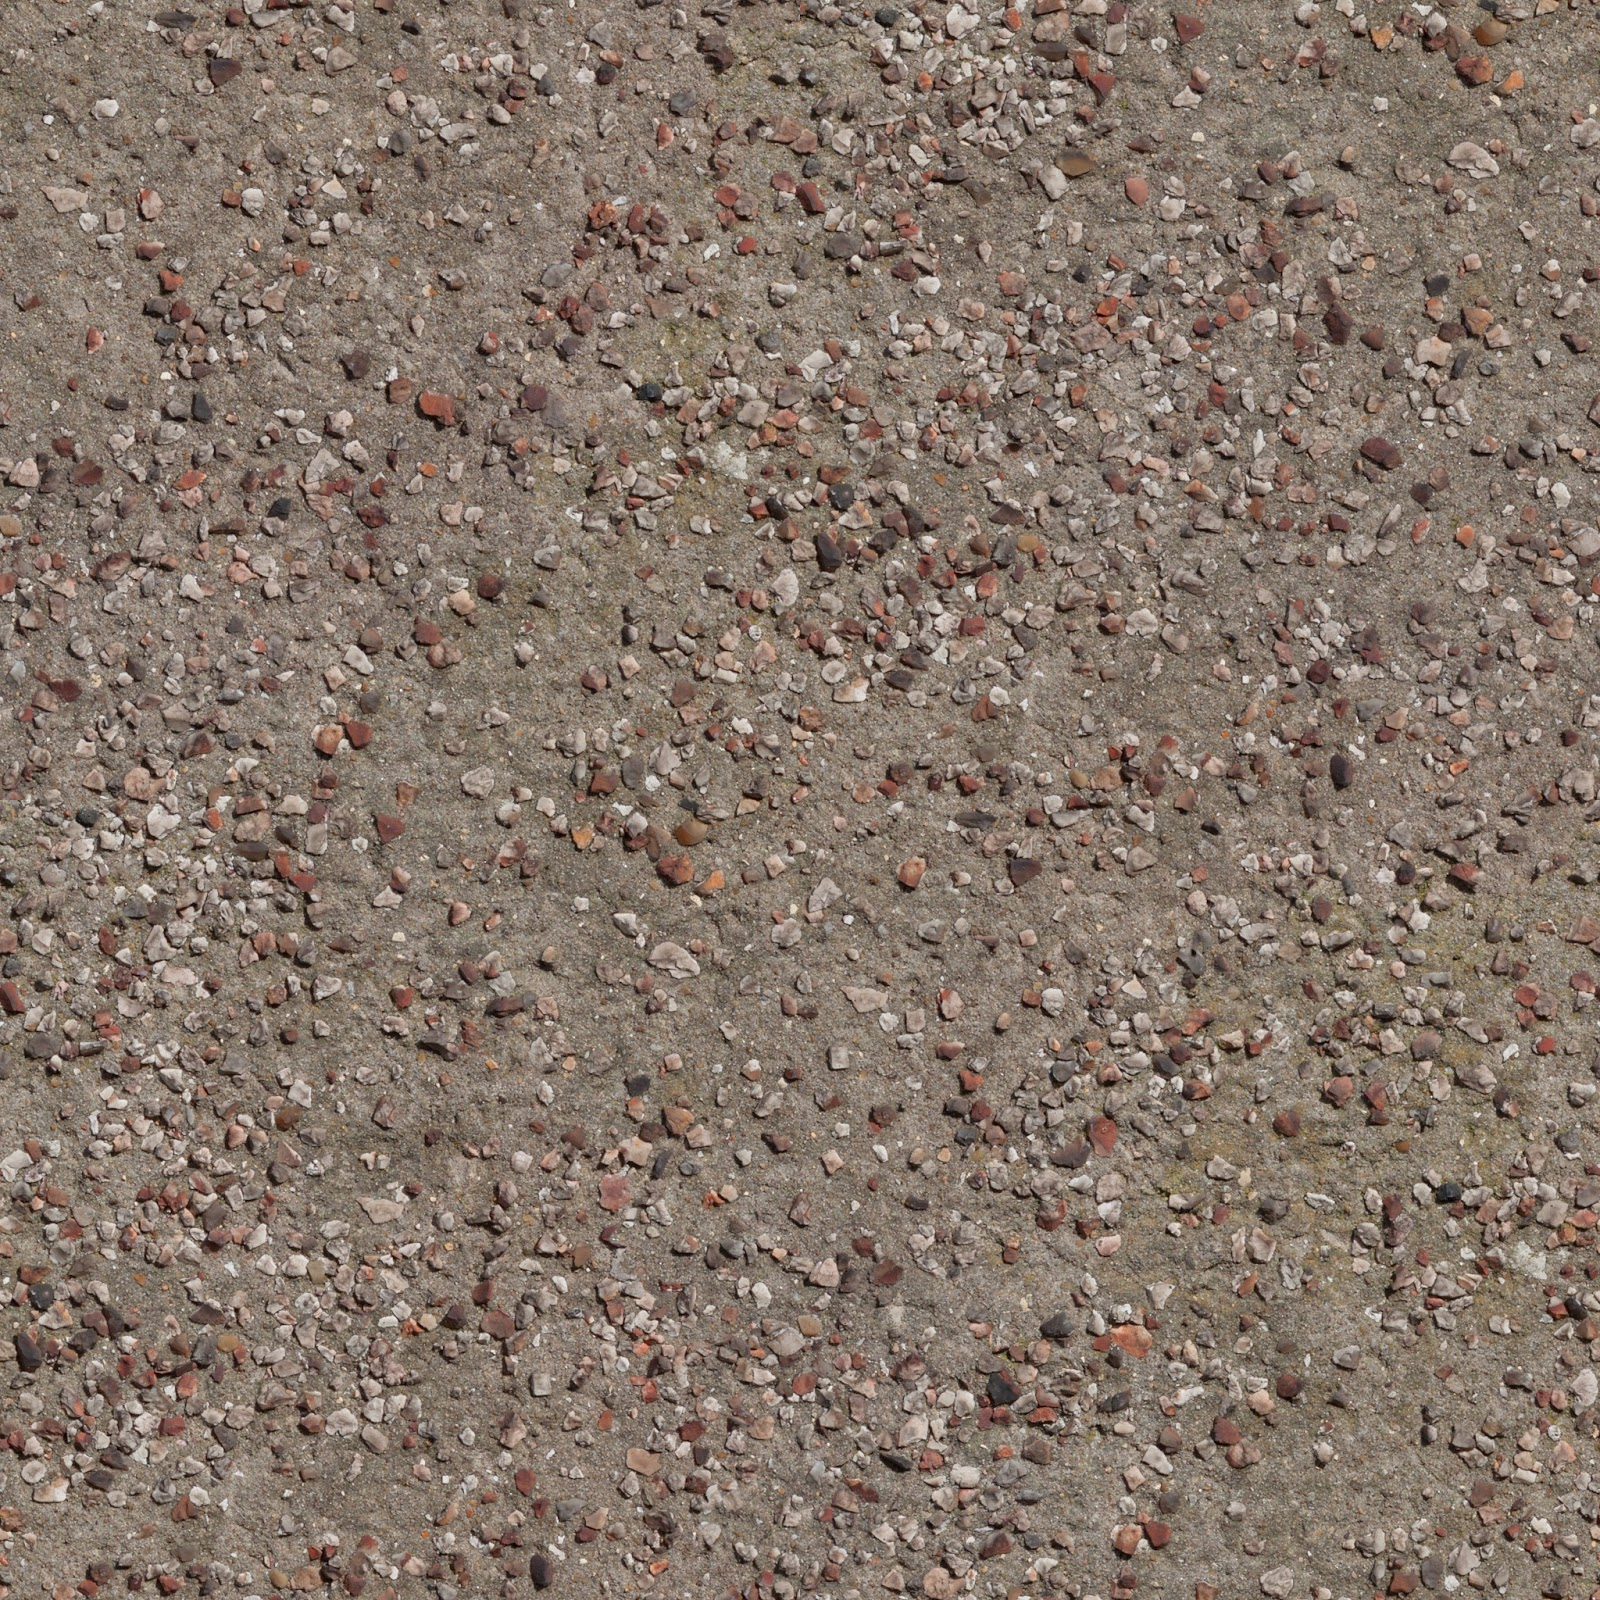 Seamless stones on dirt floor texture